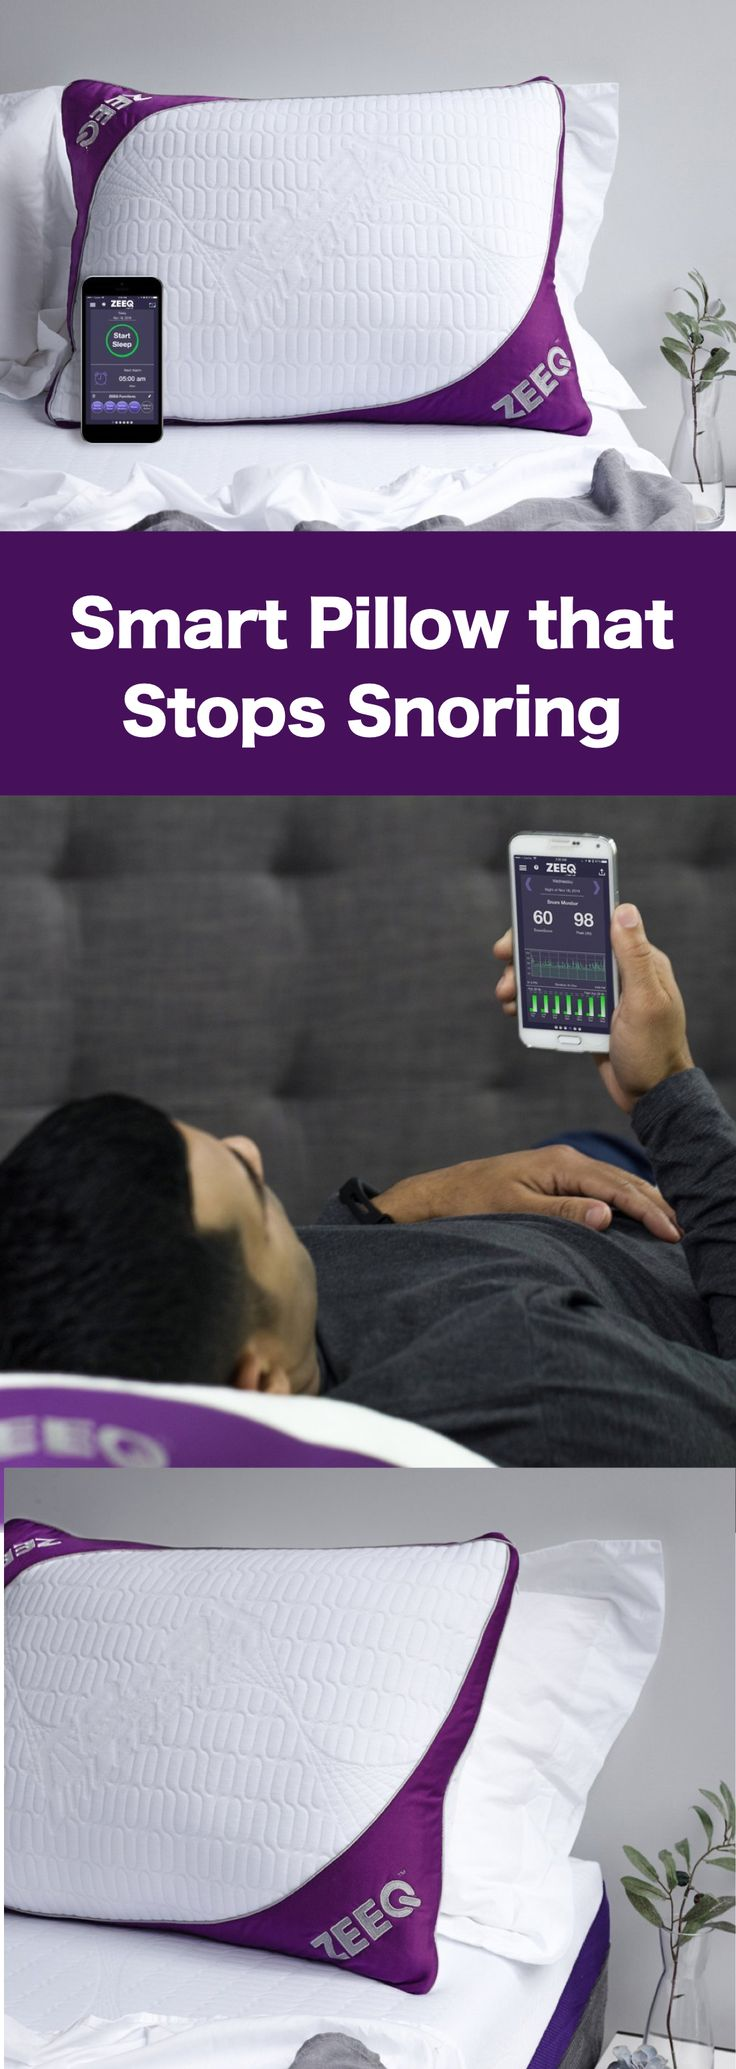 Zeeq: World's first smart pillow that stops snoring, tracks sleep patterns and improves sleep quality.